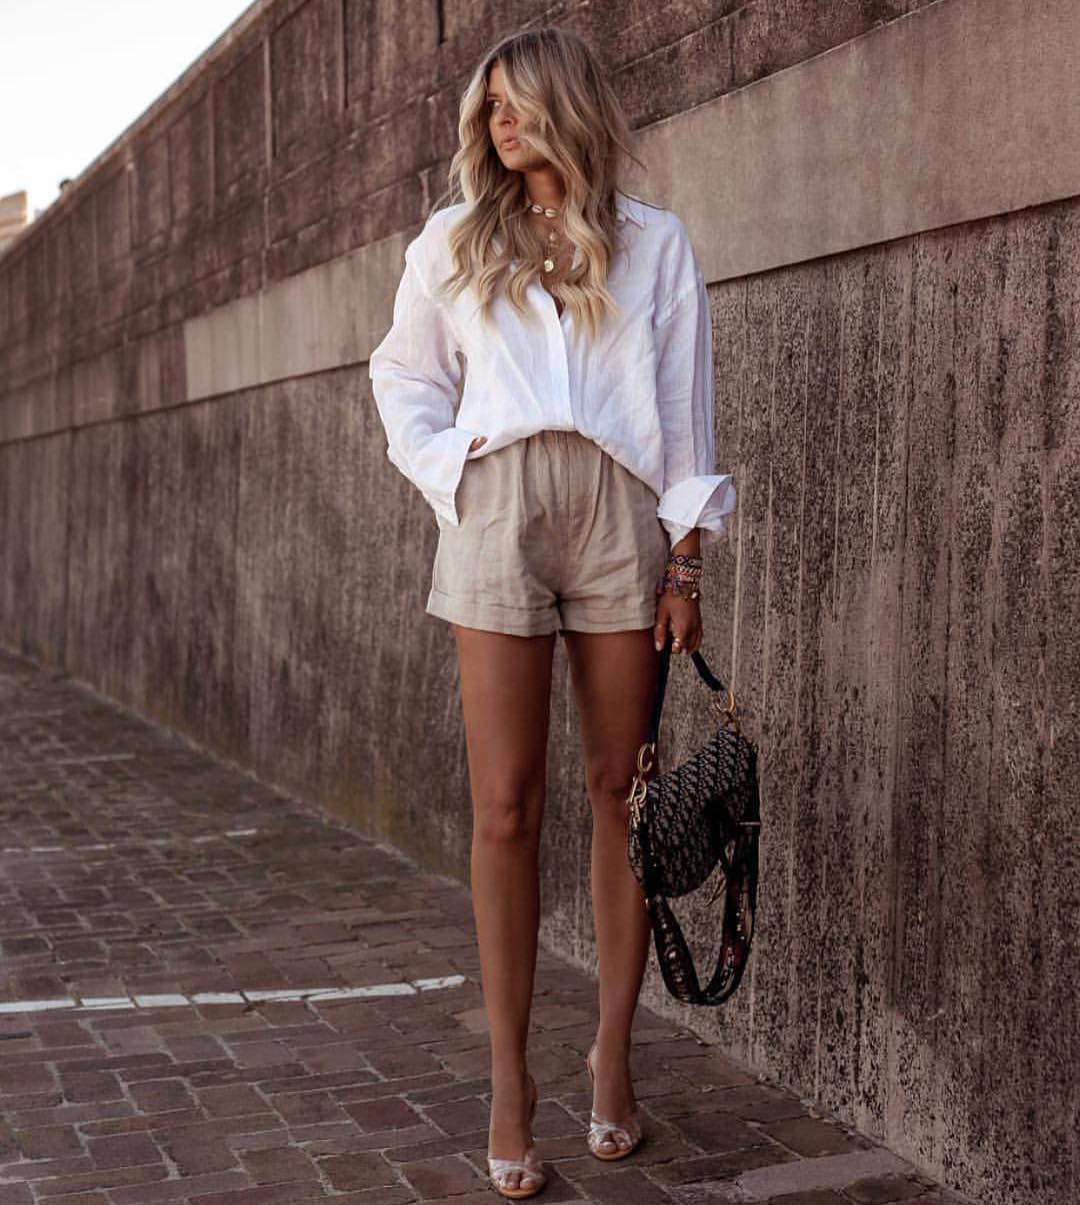 Summer Smart-Casual Basics: White Linen Shirt And Khaki Desert Shorts 2019